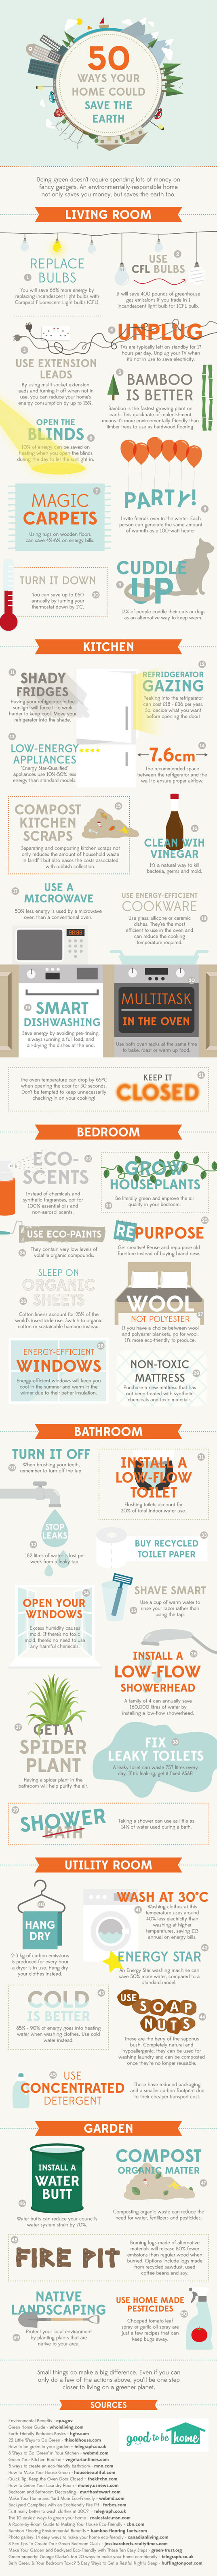 50-ways-your-home-could-save-the-earth-infographic-2